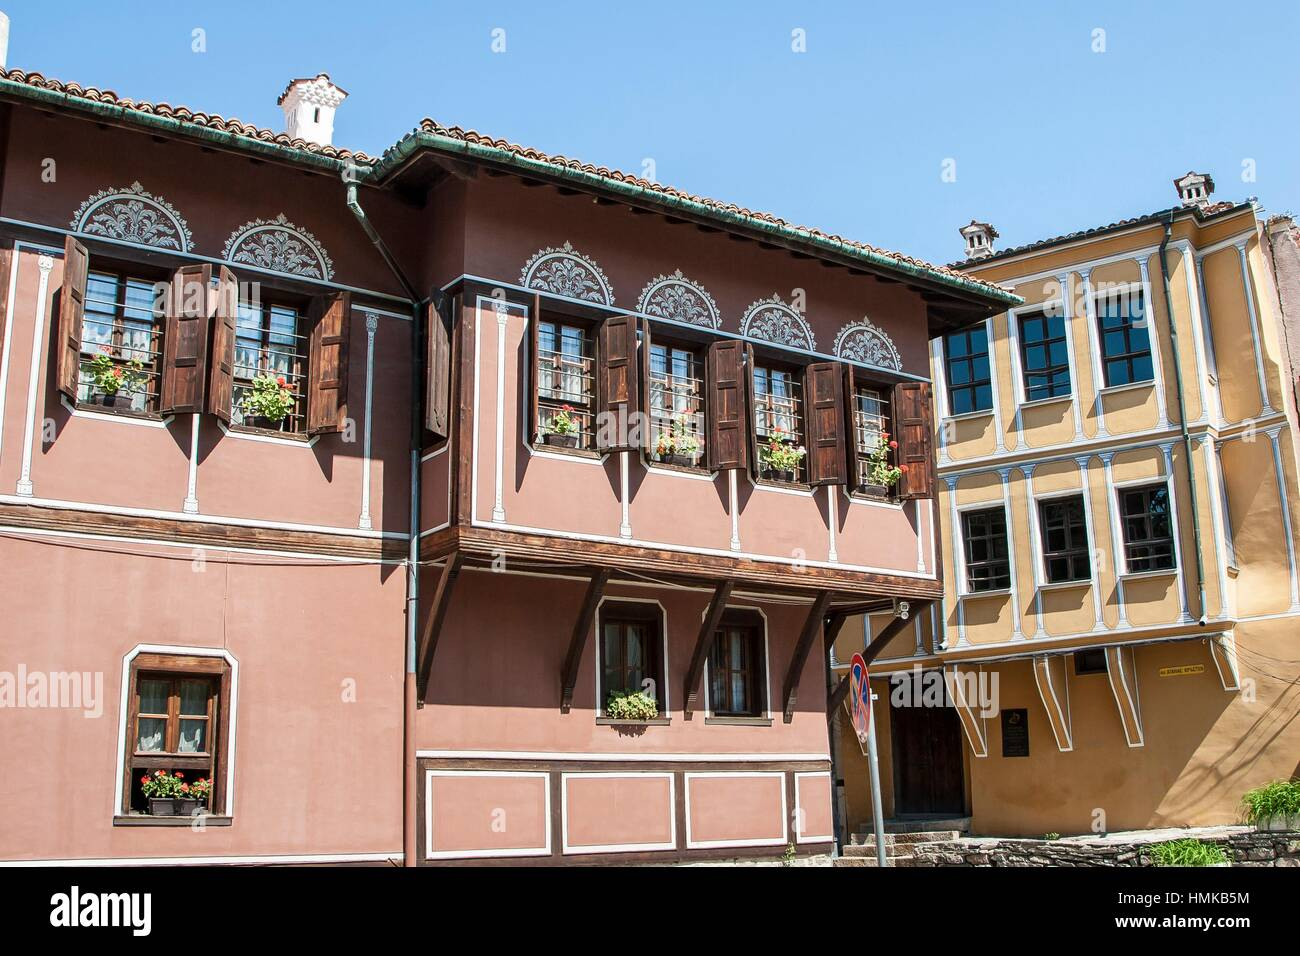 Balabanov House, Nebet height, Old Town, Plovdiv, Bulgaria. - Stock Image